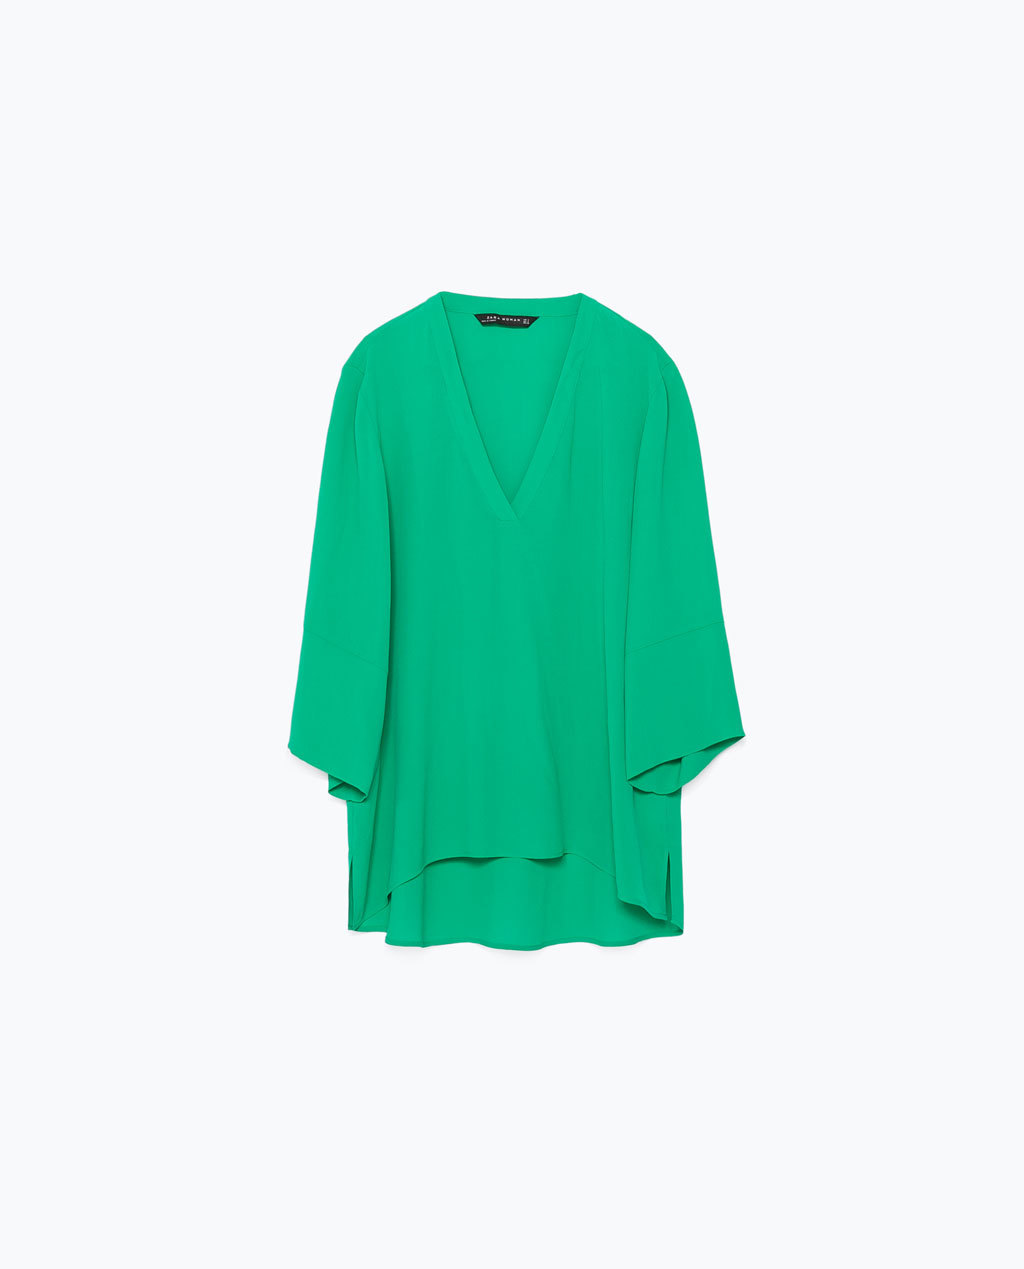 Uneven Hem Top - neckline: low v-neck; sleeve style: dolman/batwing; pattern: plain; length: below the bottom; style: blouse; predominant colour: emerald green; occasions: casual, evening, creative work; fibres: polyester/polyamide - 100%; fit: loose; sleeve length: 3/4 length; texture group: crepes; pattern type: fabric; season: s/s 2015; wardrobe: highlight